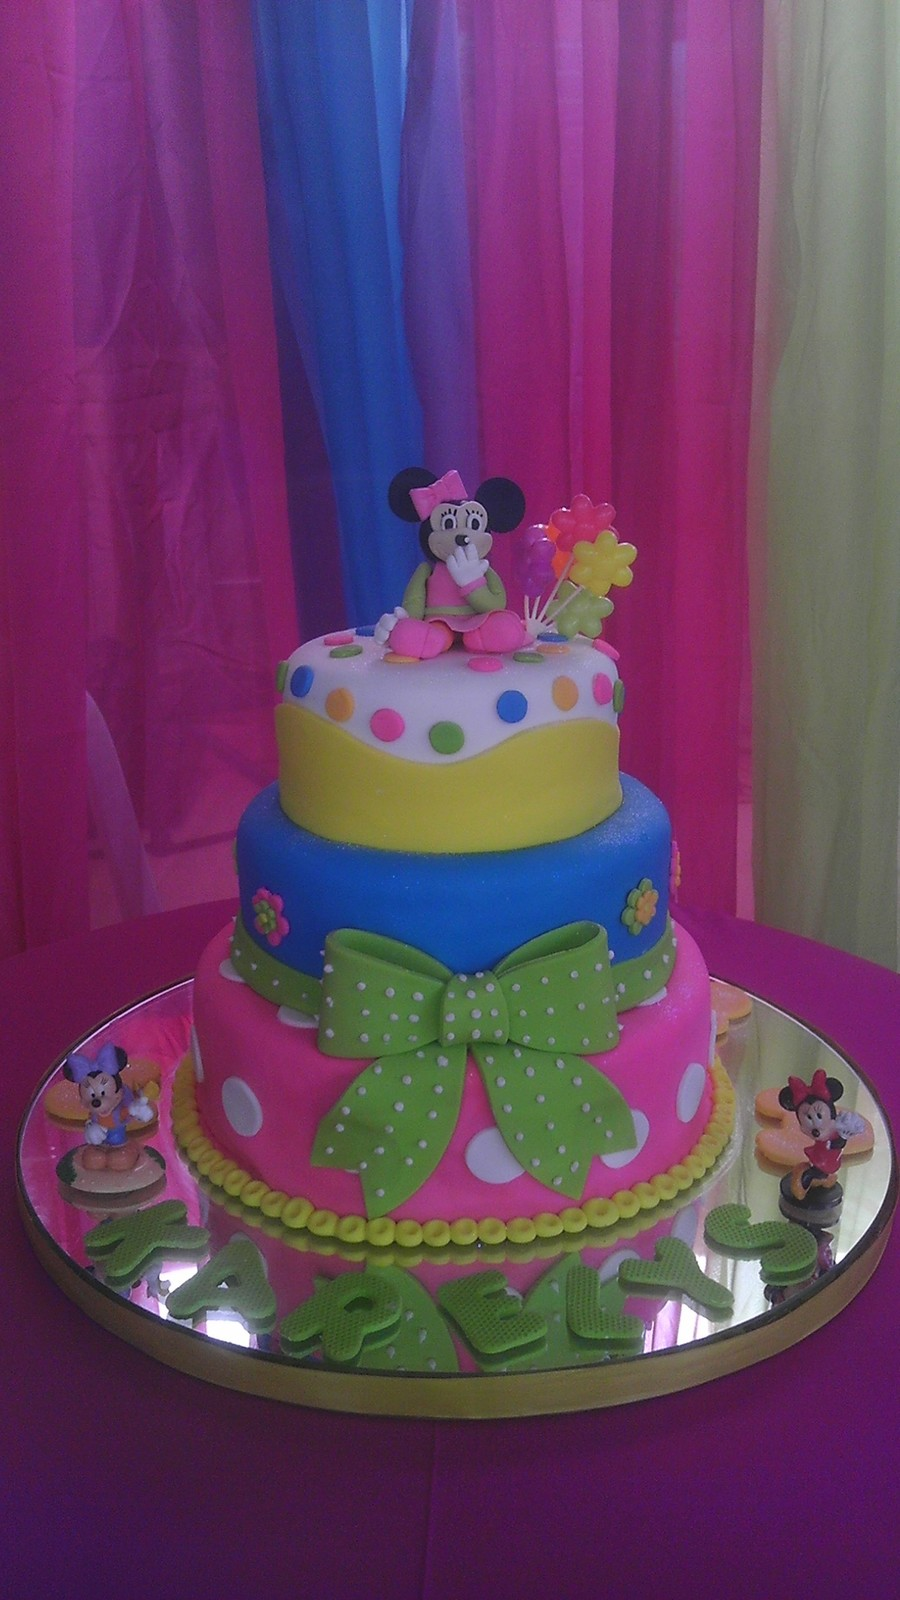 Minnie Mouse Cake 2 on Cake Central